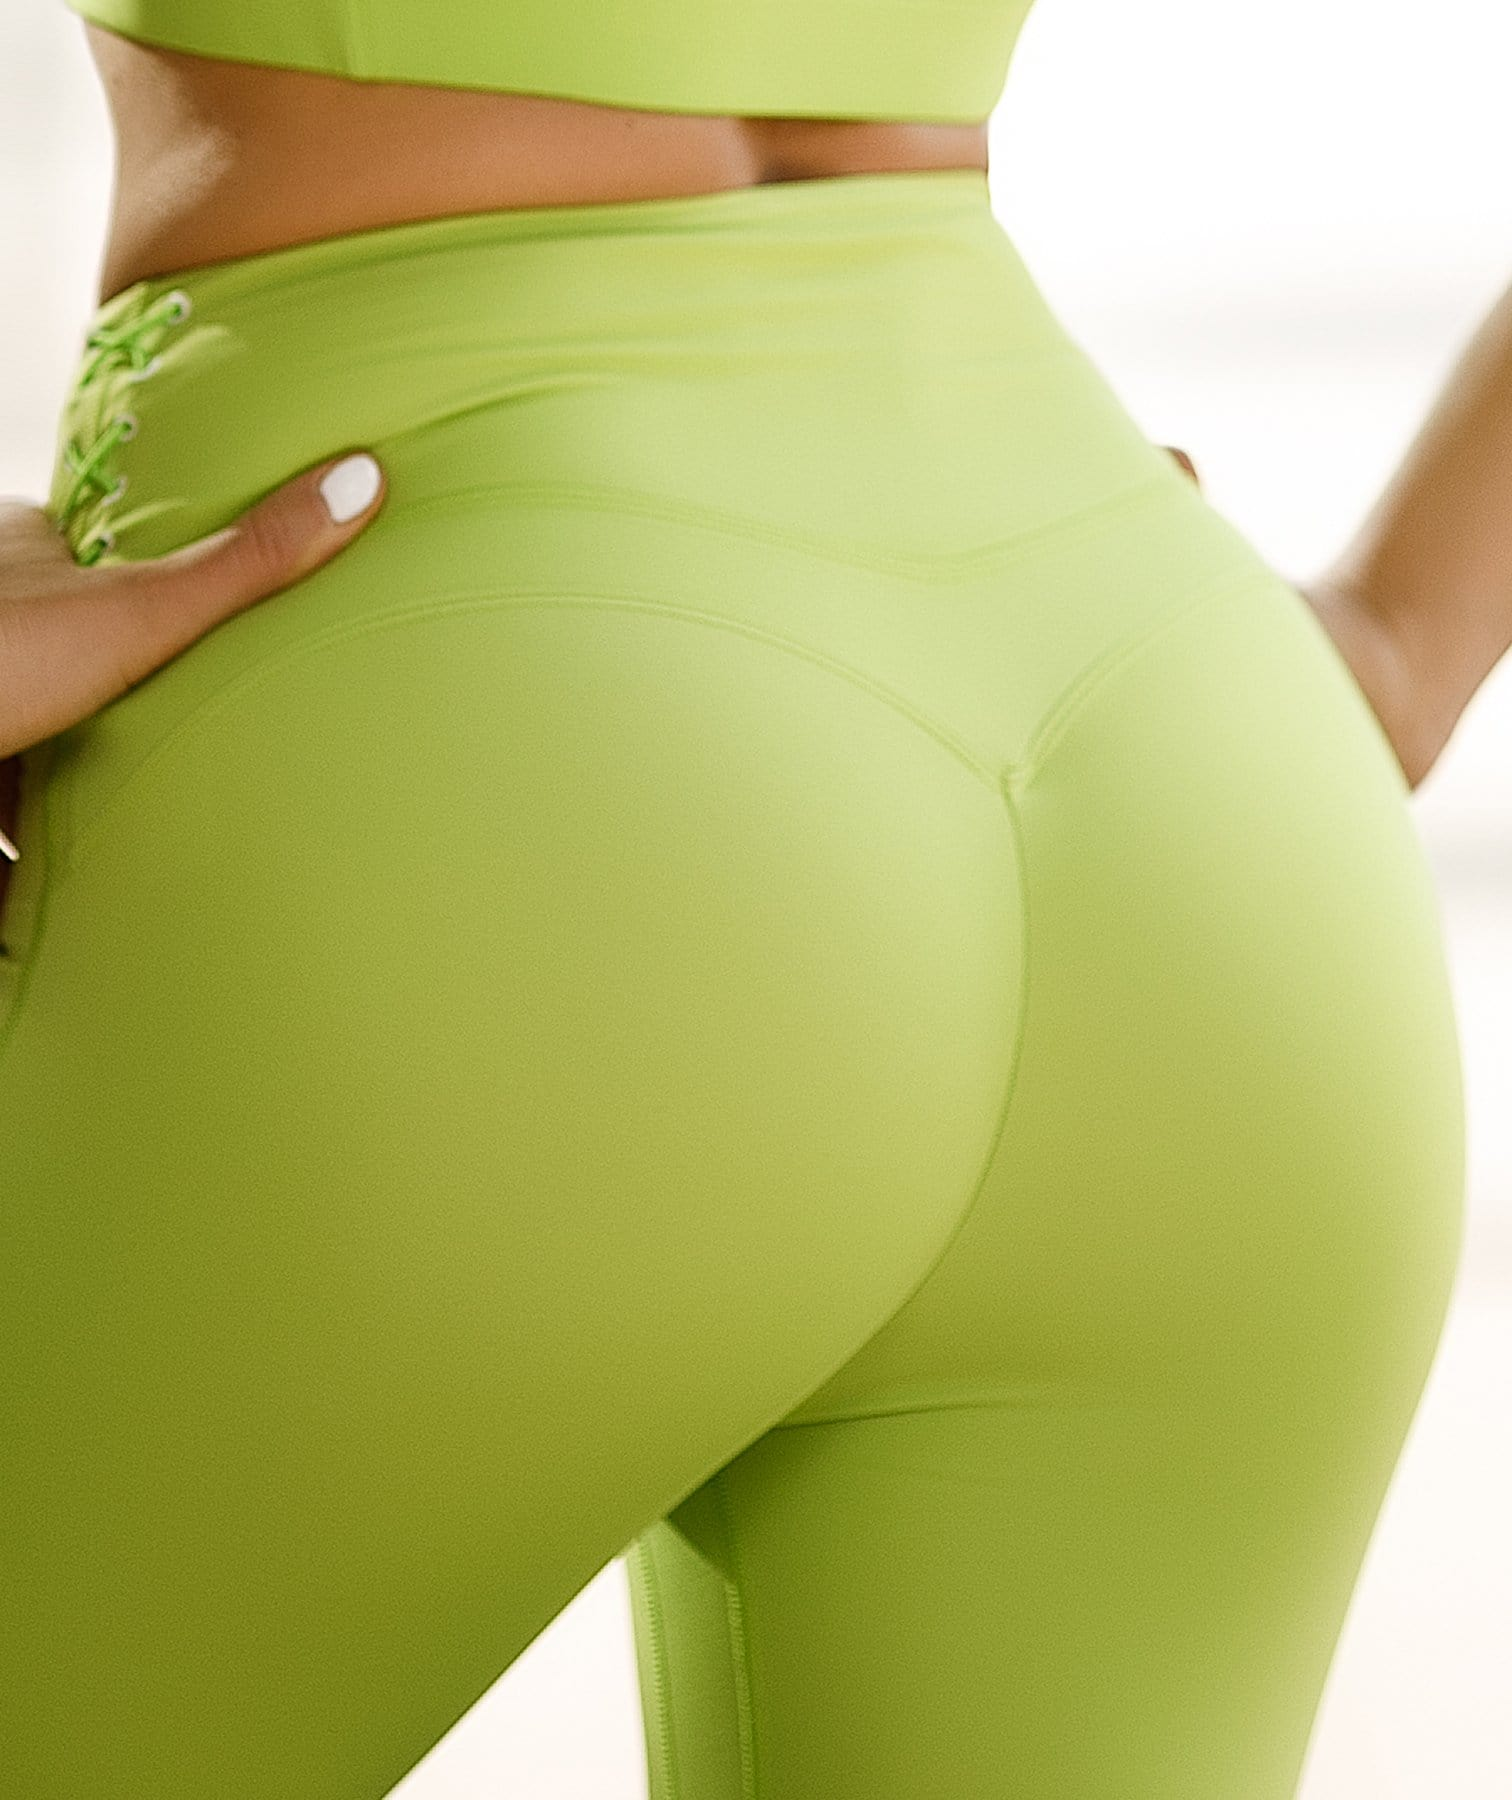 Honeypeach Cropped Leggings - Green - Firm Abs Fitness